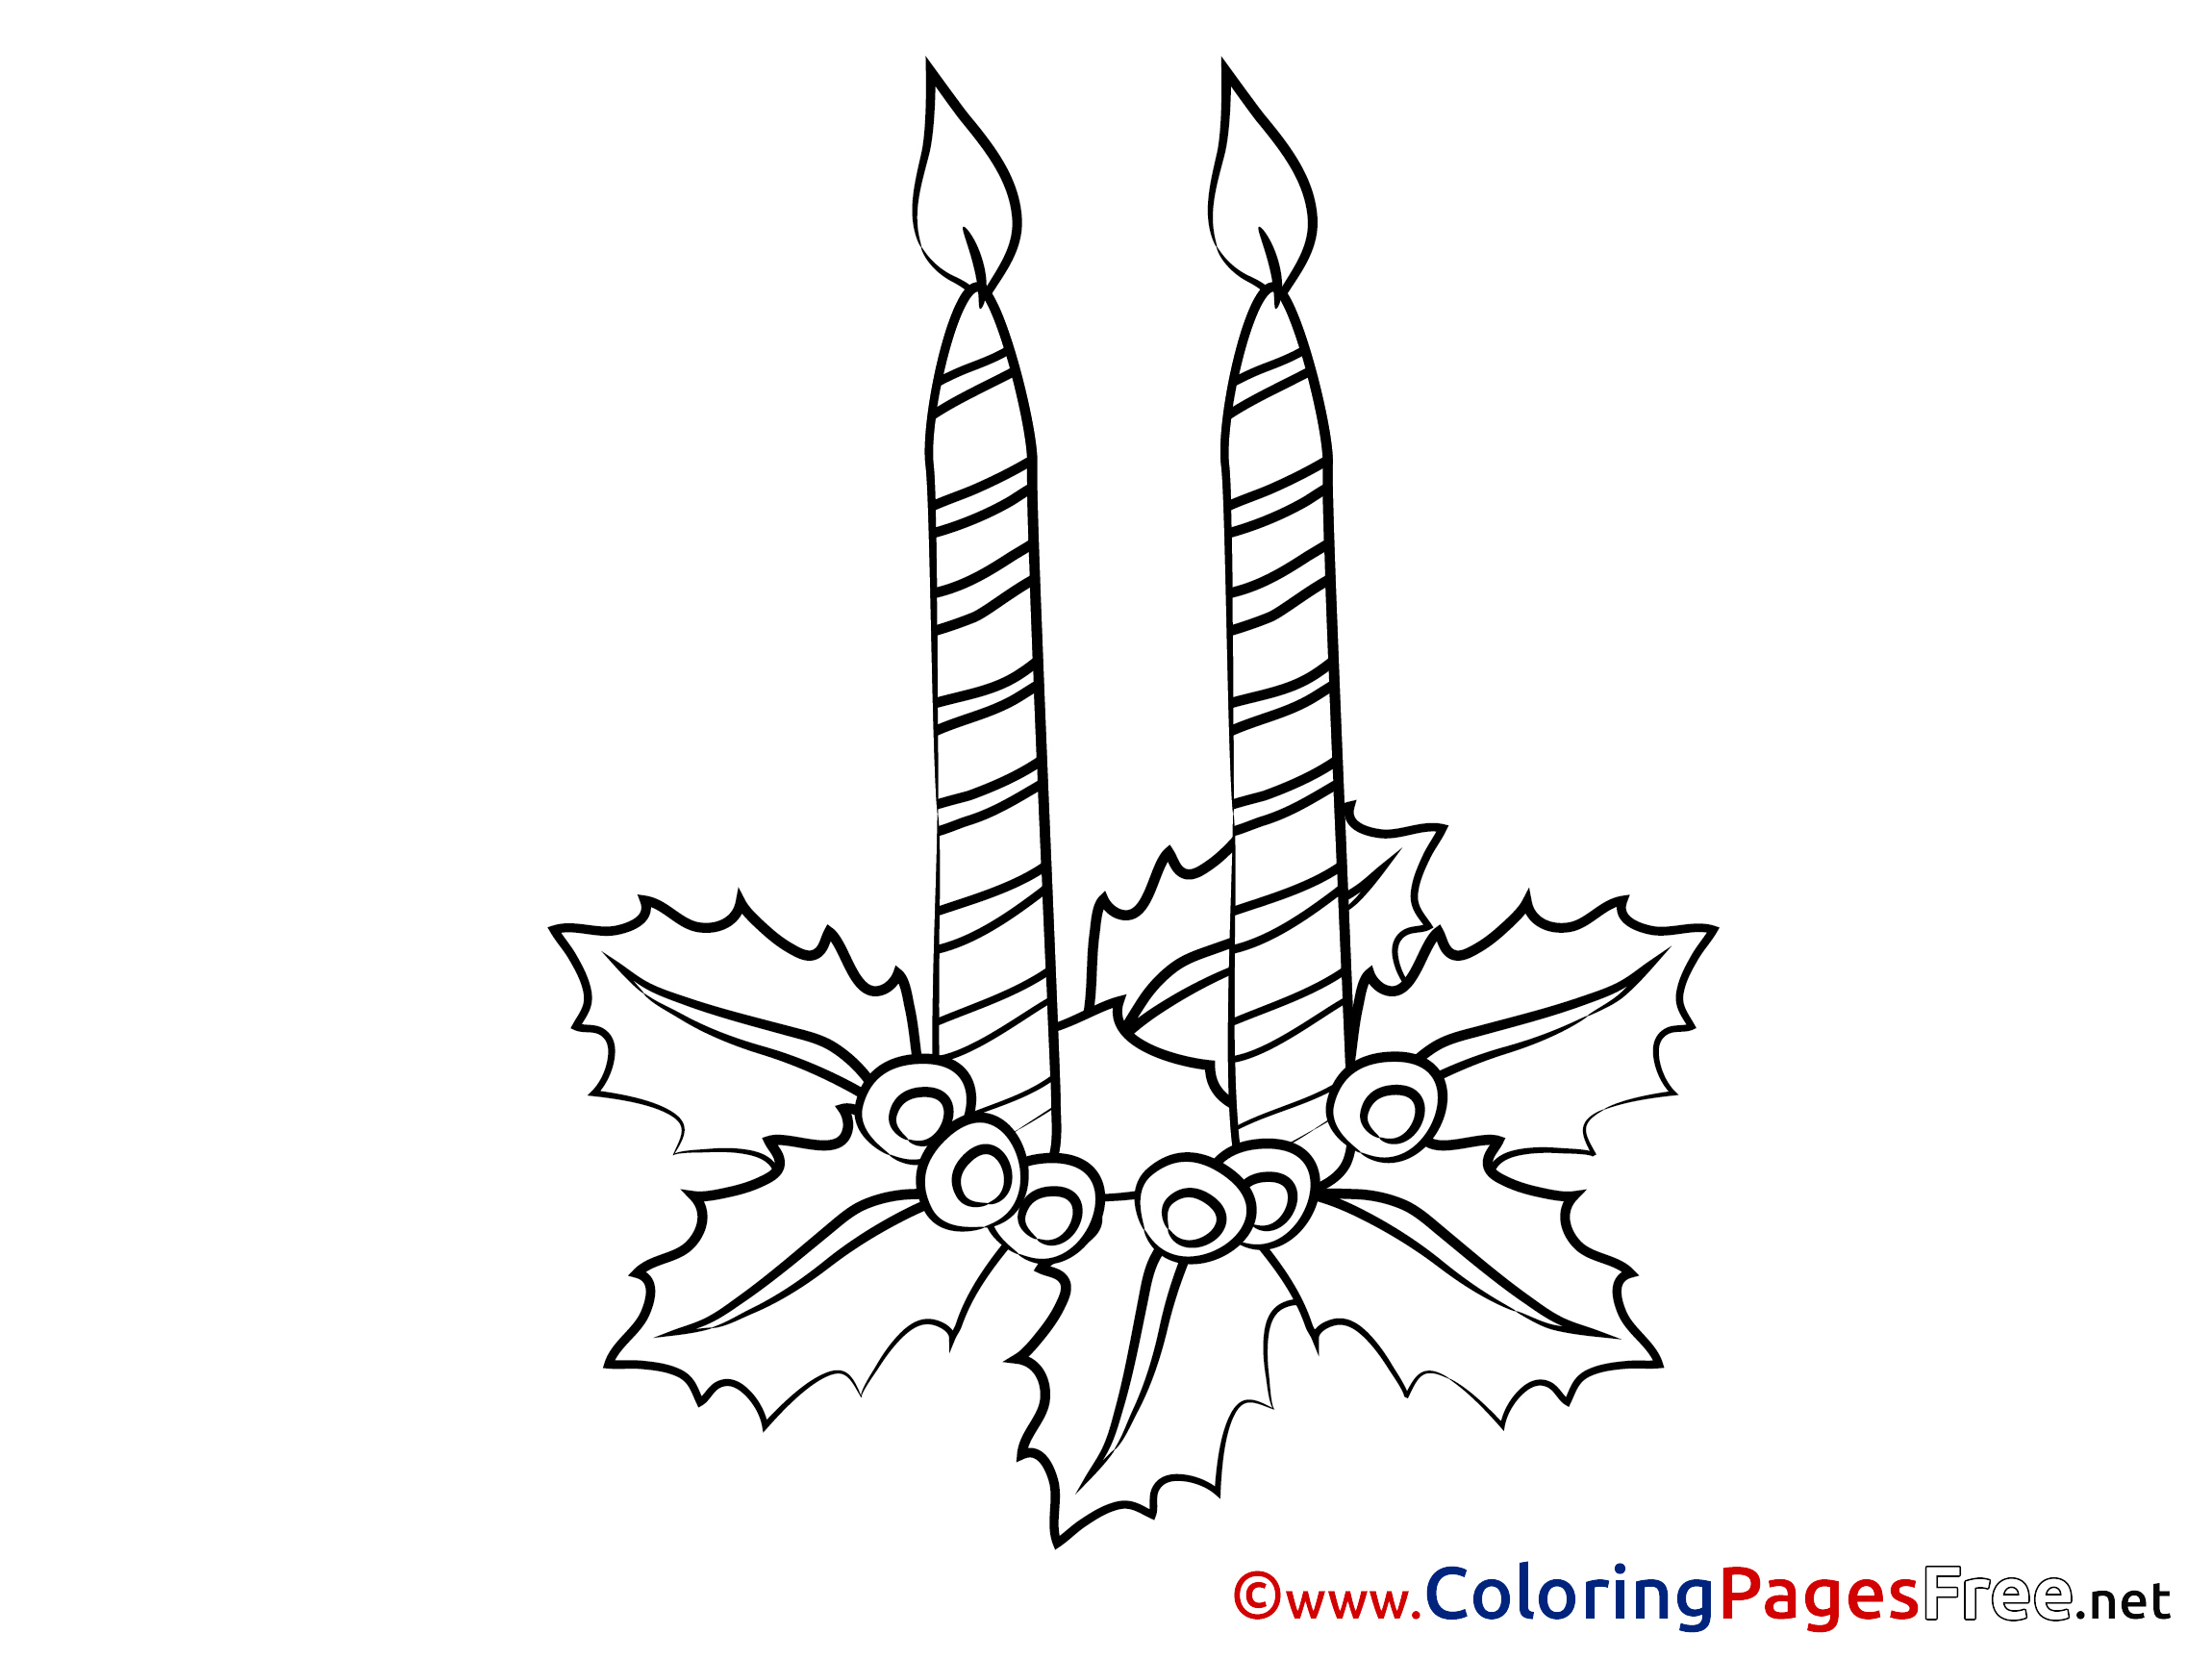 Advent Wreath Coloring Pages, Free Advent Printables | Nativity ... | 1725x2300